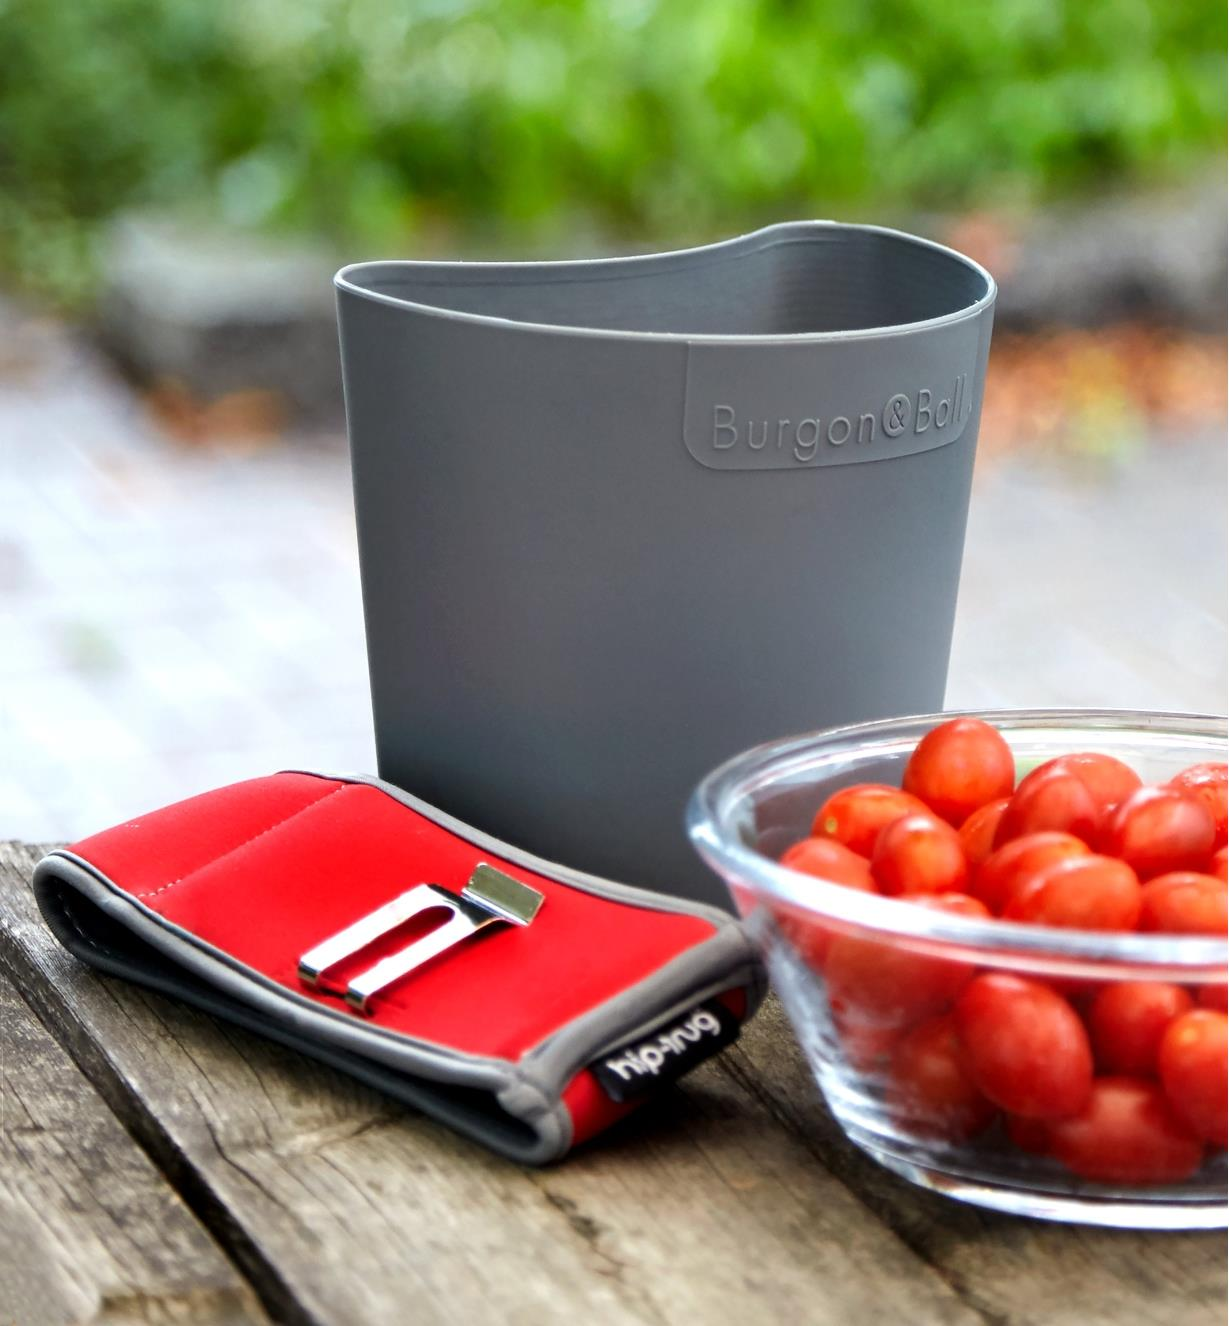 A small hip-trug removed from its neoprene holster, next to a small harvest of grape tomatoes